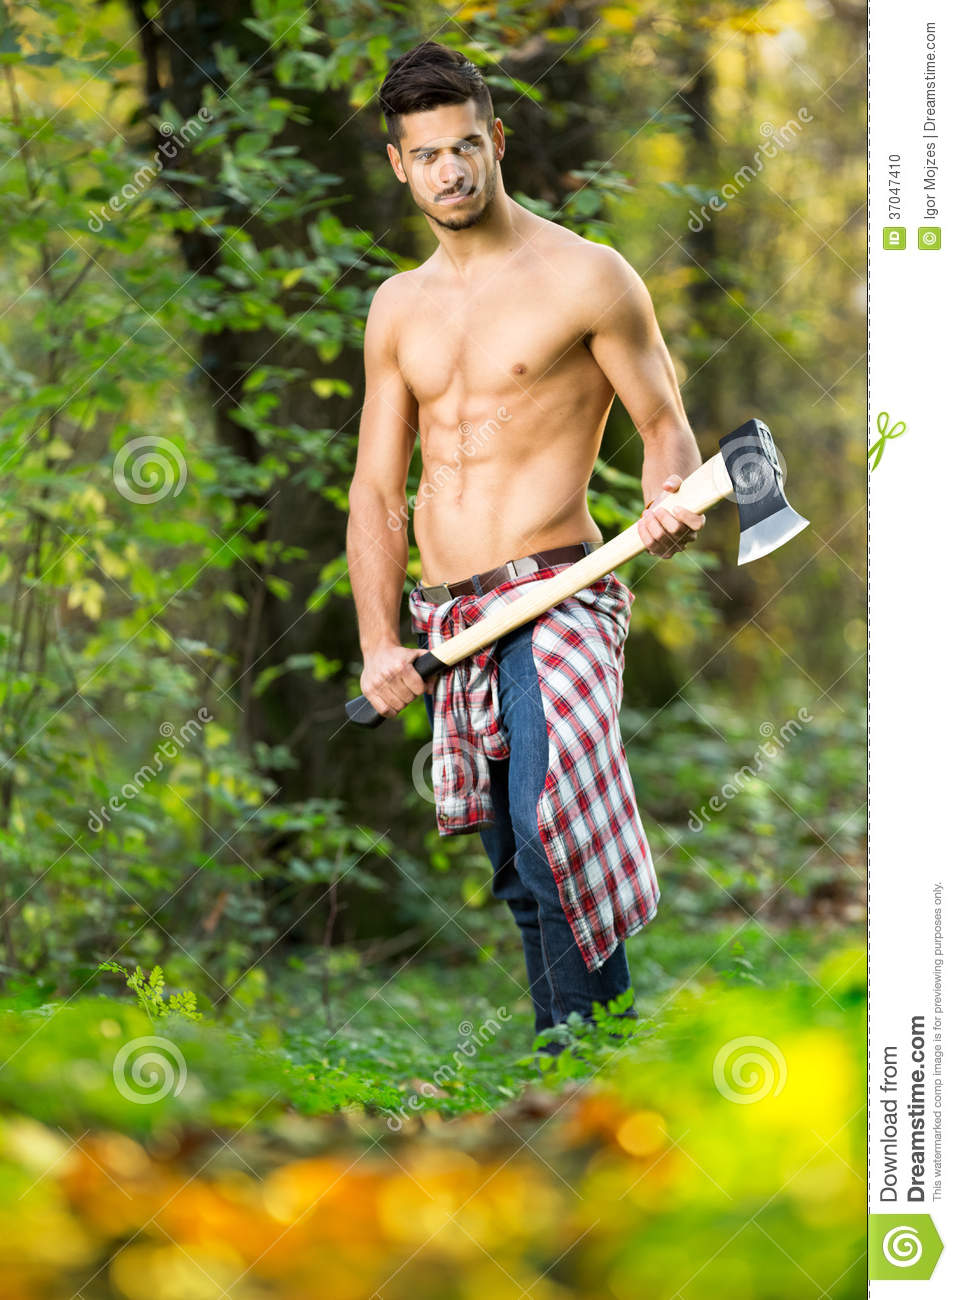 Cable guy naked for men